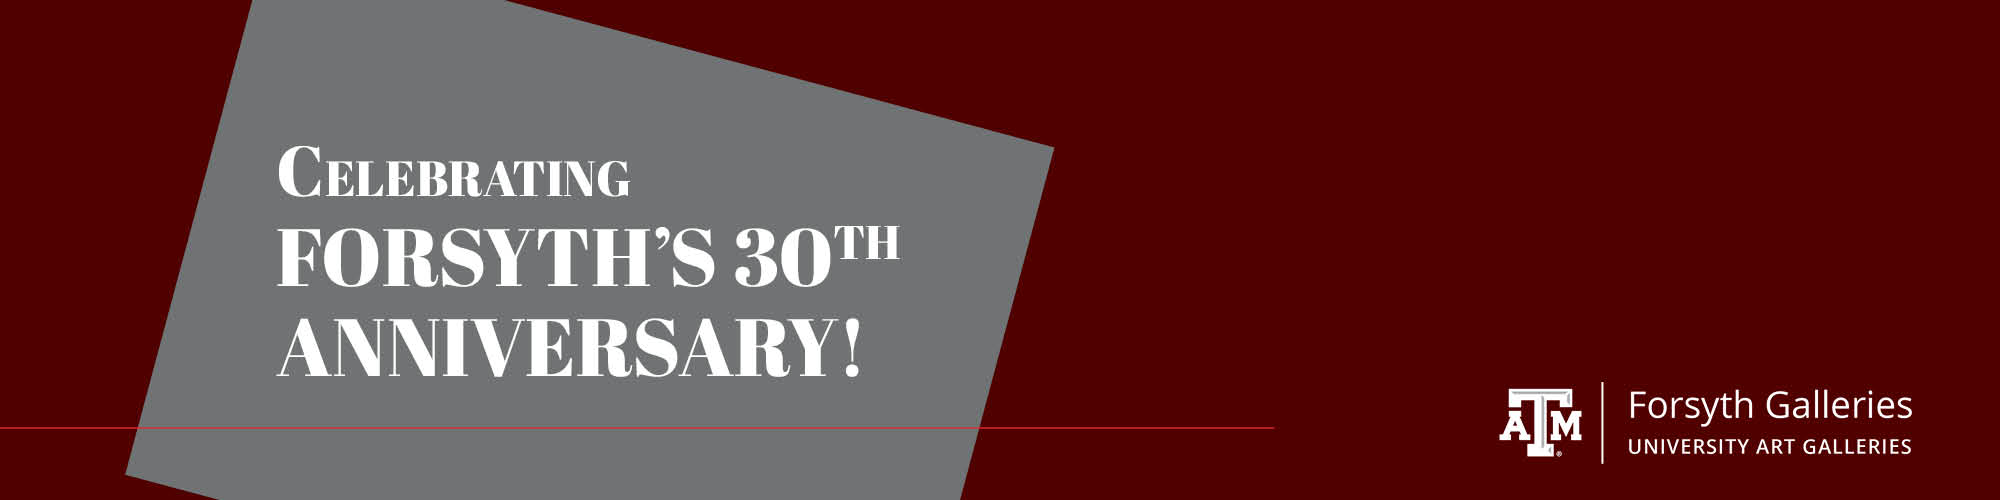 "Maroon background, gray box with white text that reads ""Celebrating Forsyth's 30th Anniversary!"" Forsyth logo in bottom right corner"